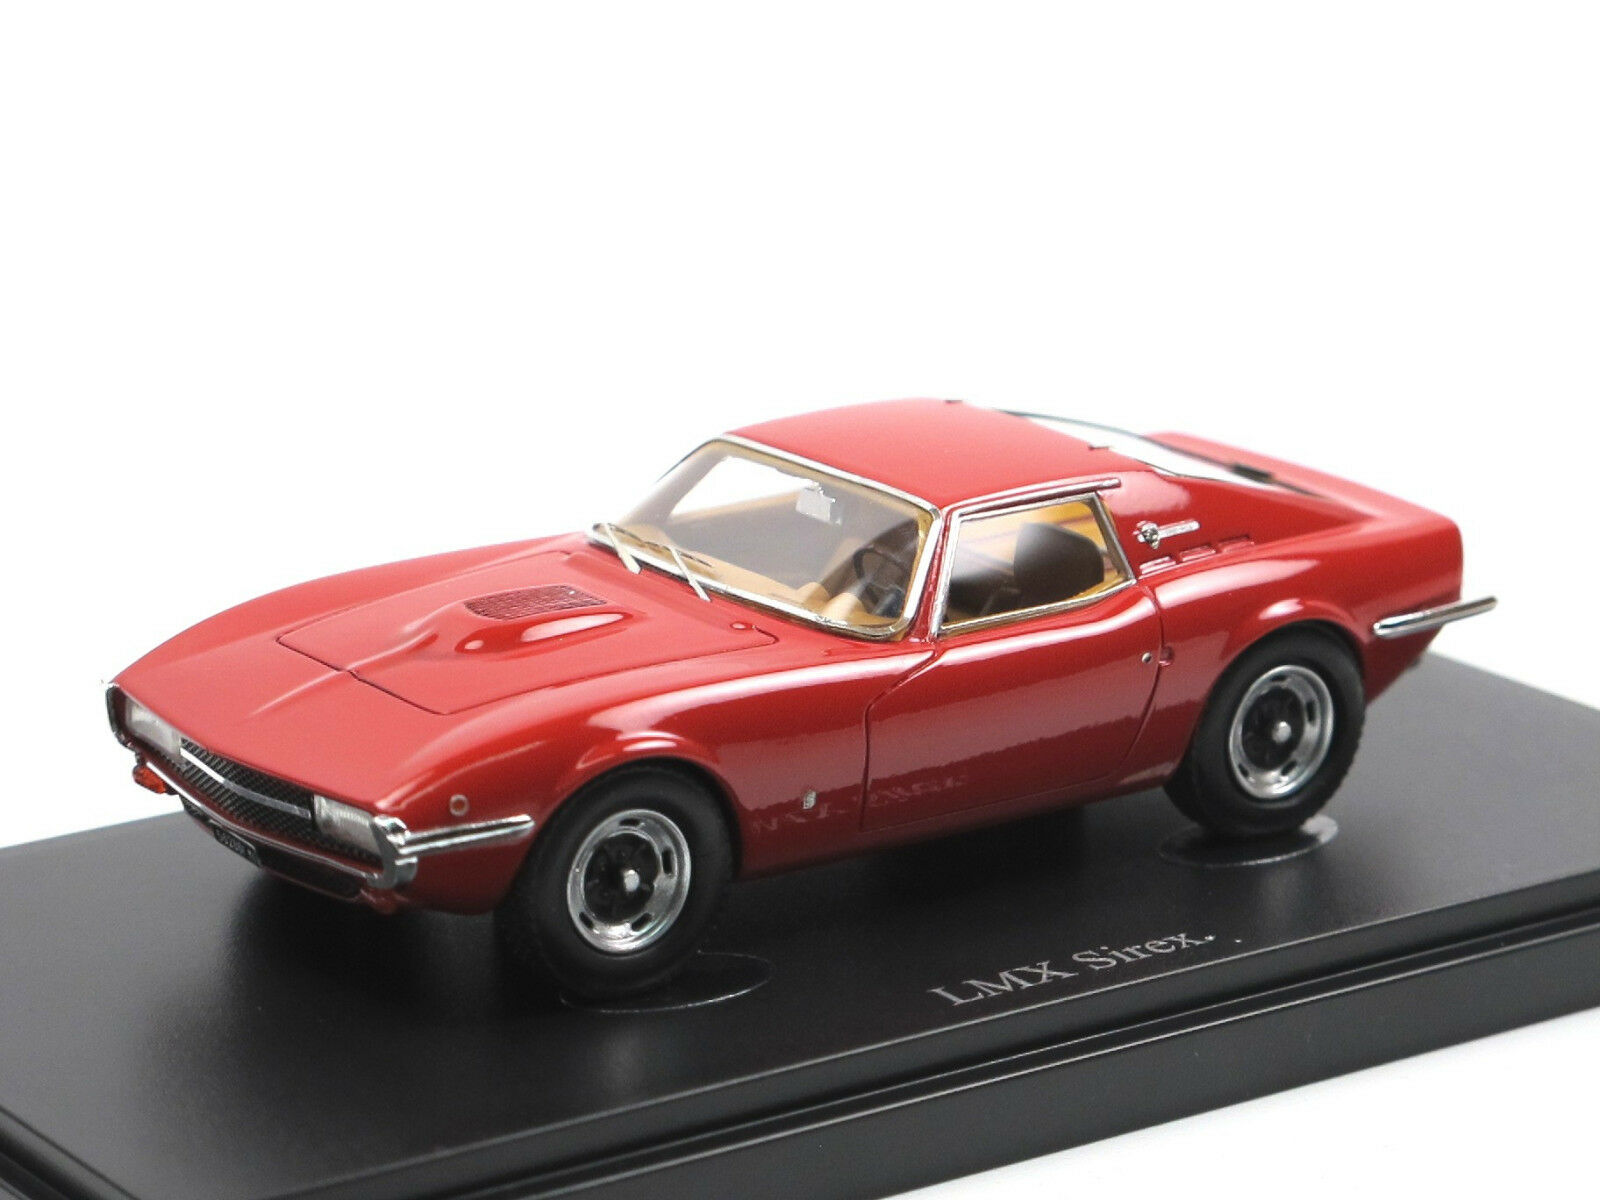 Autocult 05016 - 1970 LMX 2300 HCS Sirex SPORT COUPE ITALIA ROSSO RESINA 1 43